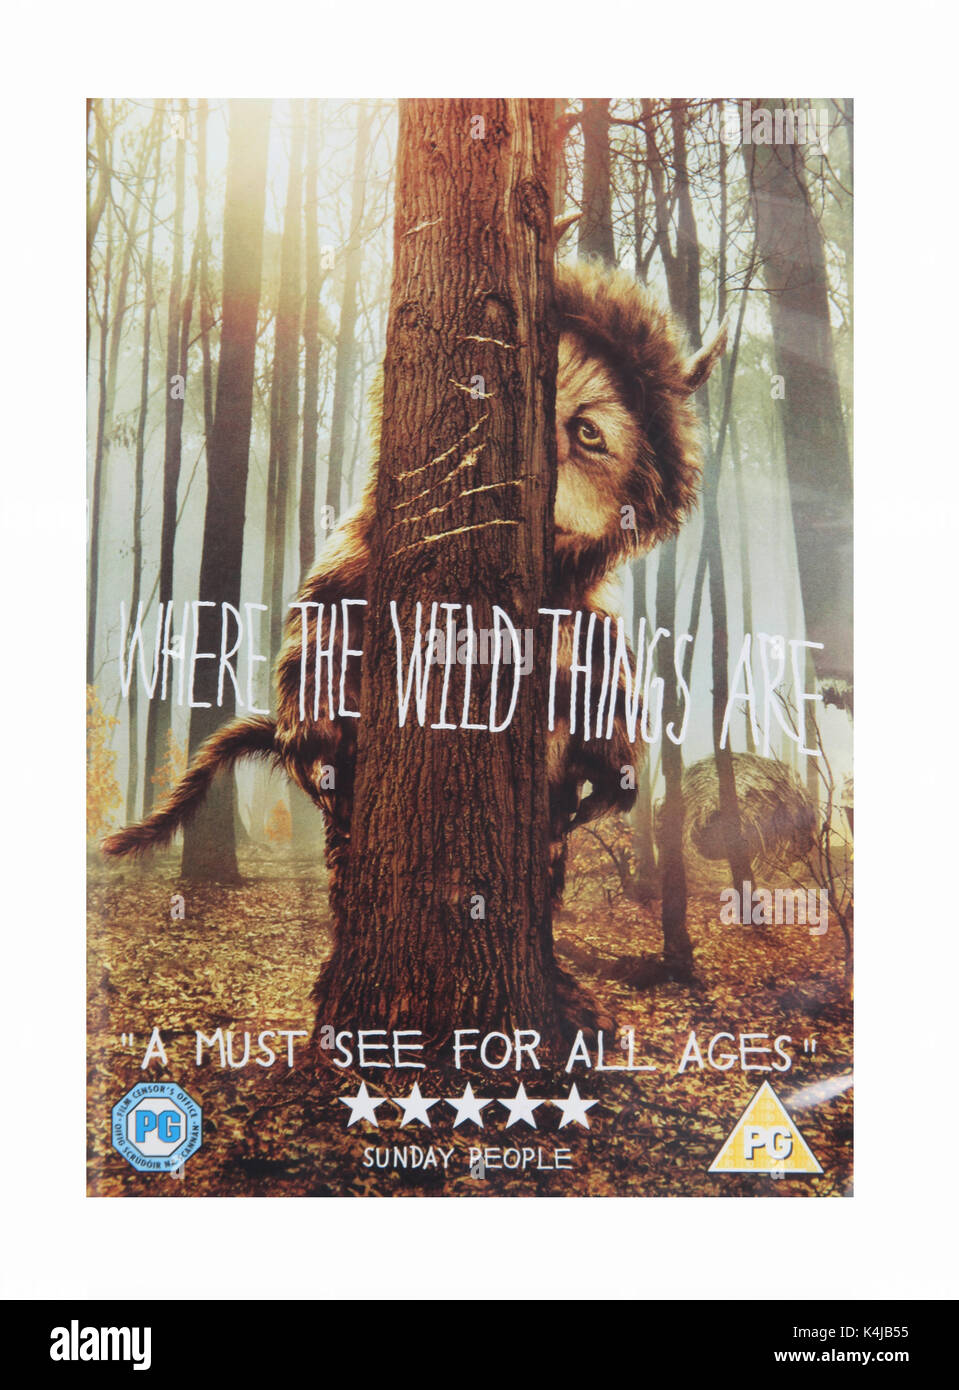 The film, Where the Wild Things Are, directed by Spike Jonze - Stock Image